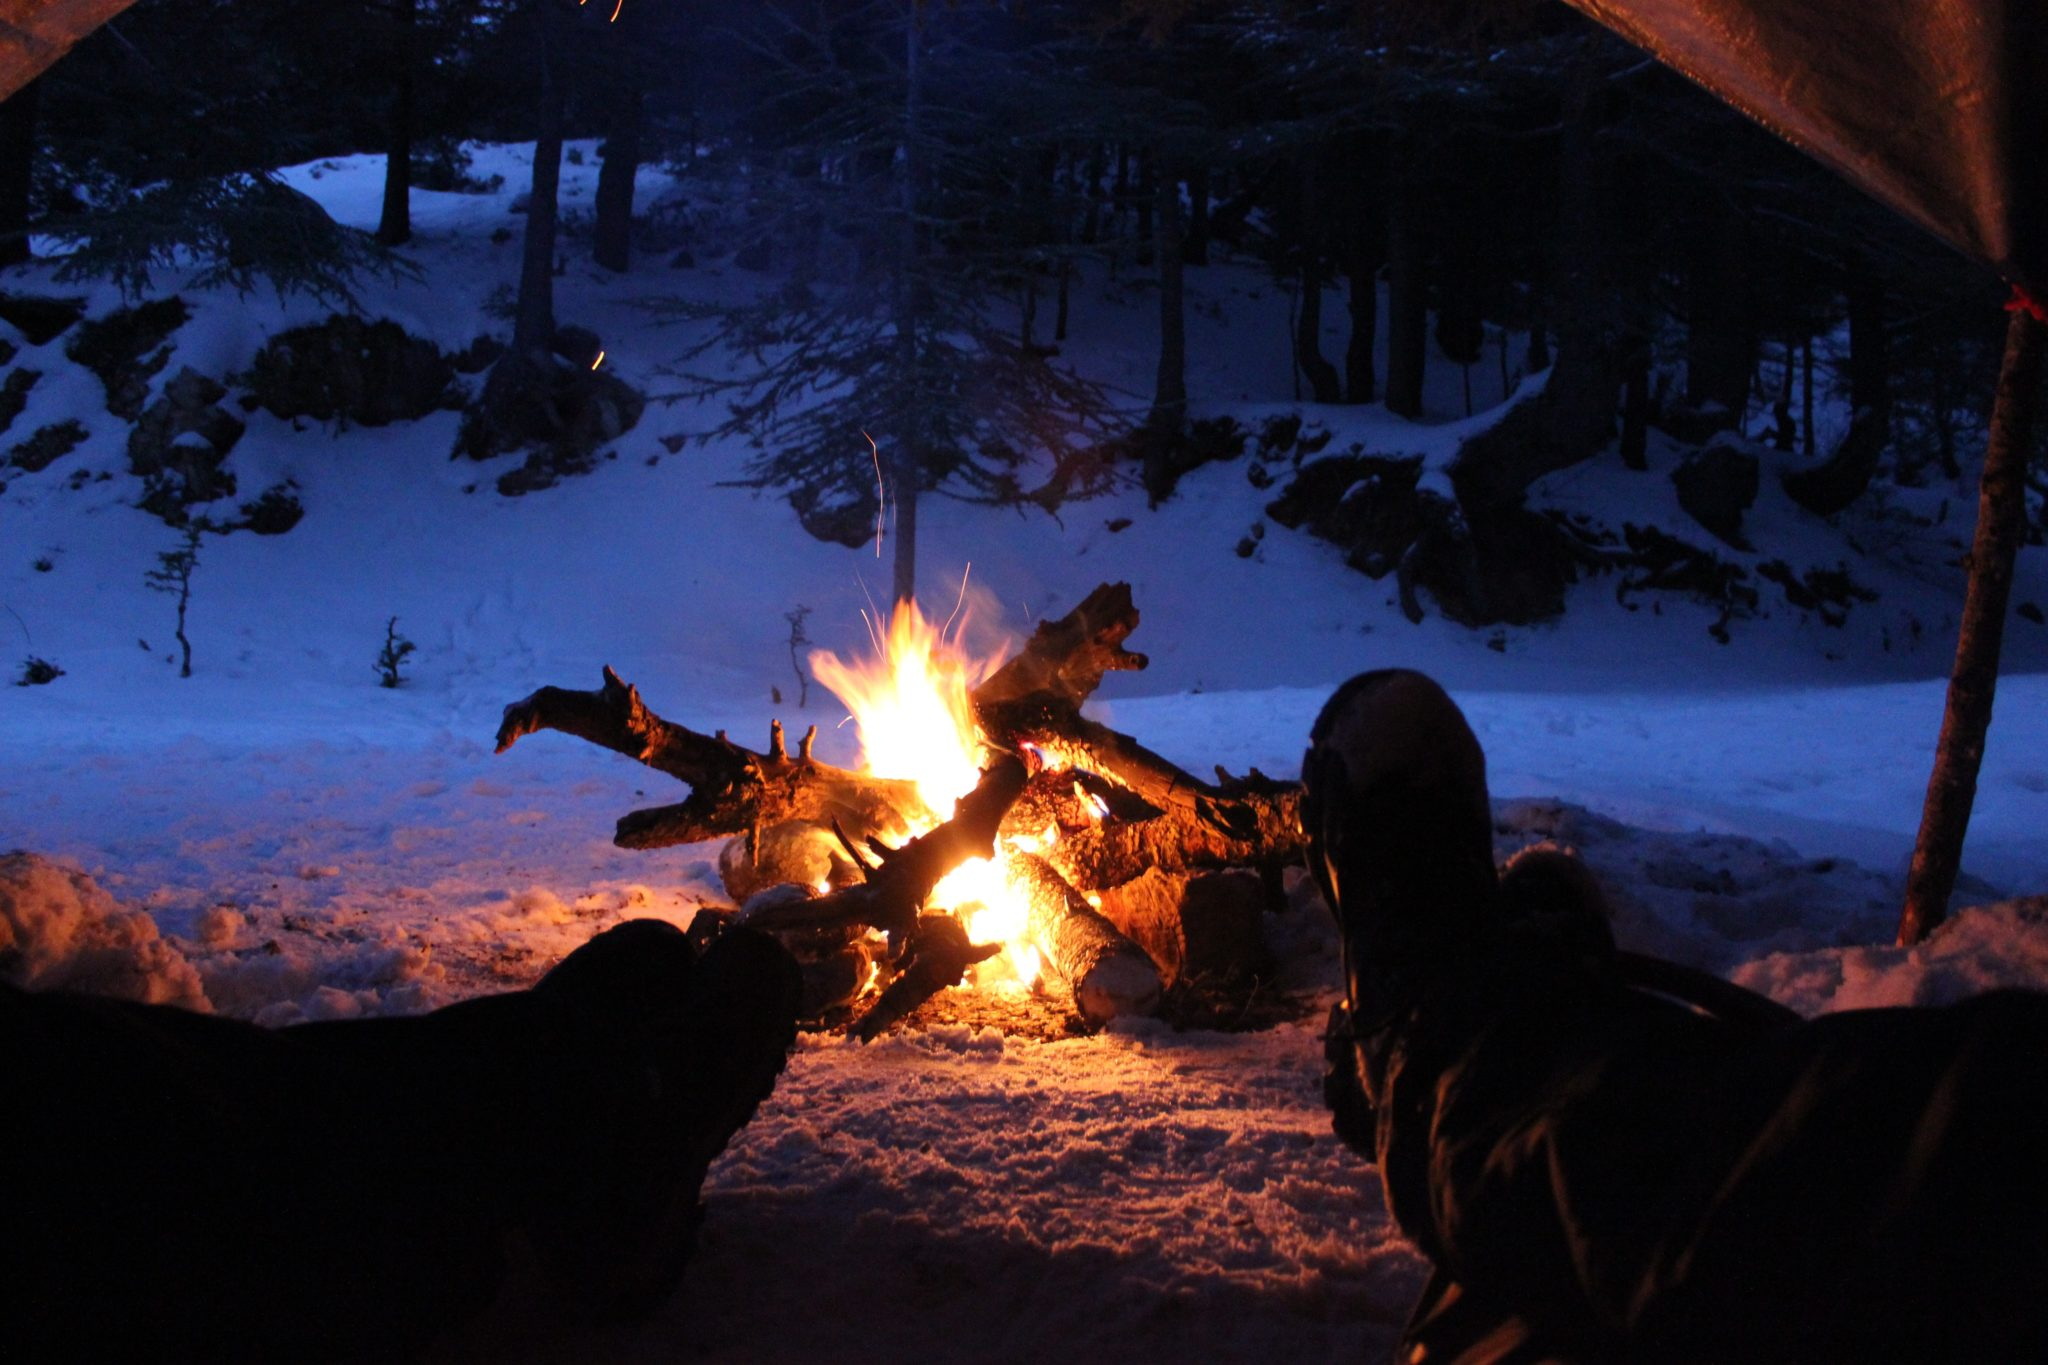 Winter camping fun experience bonfire